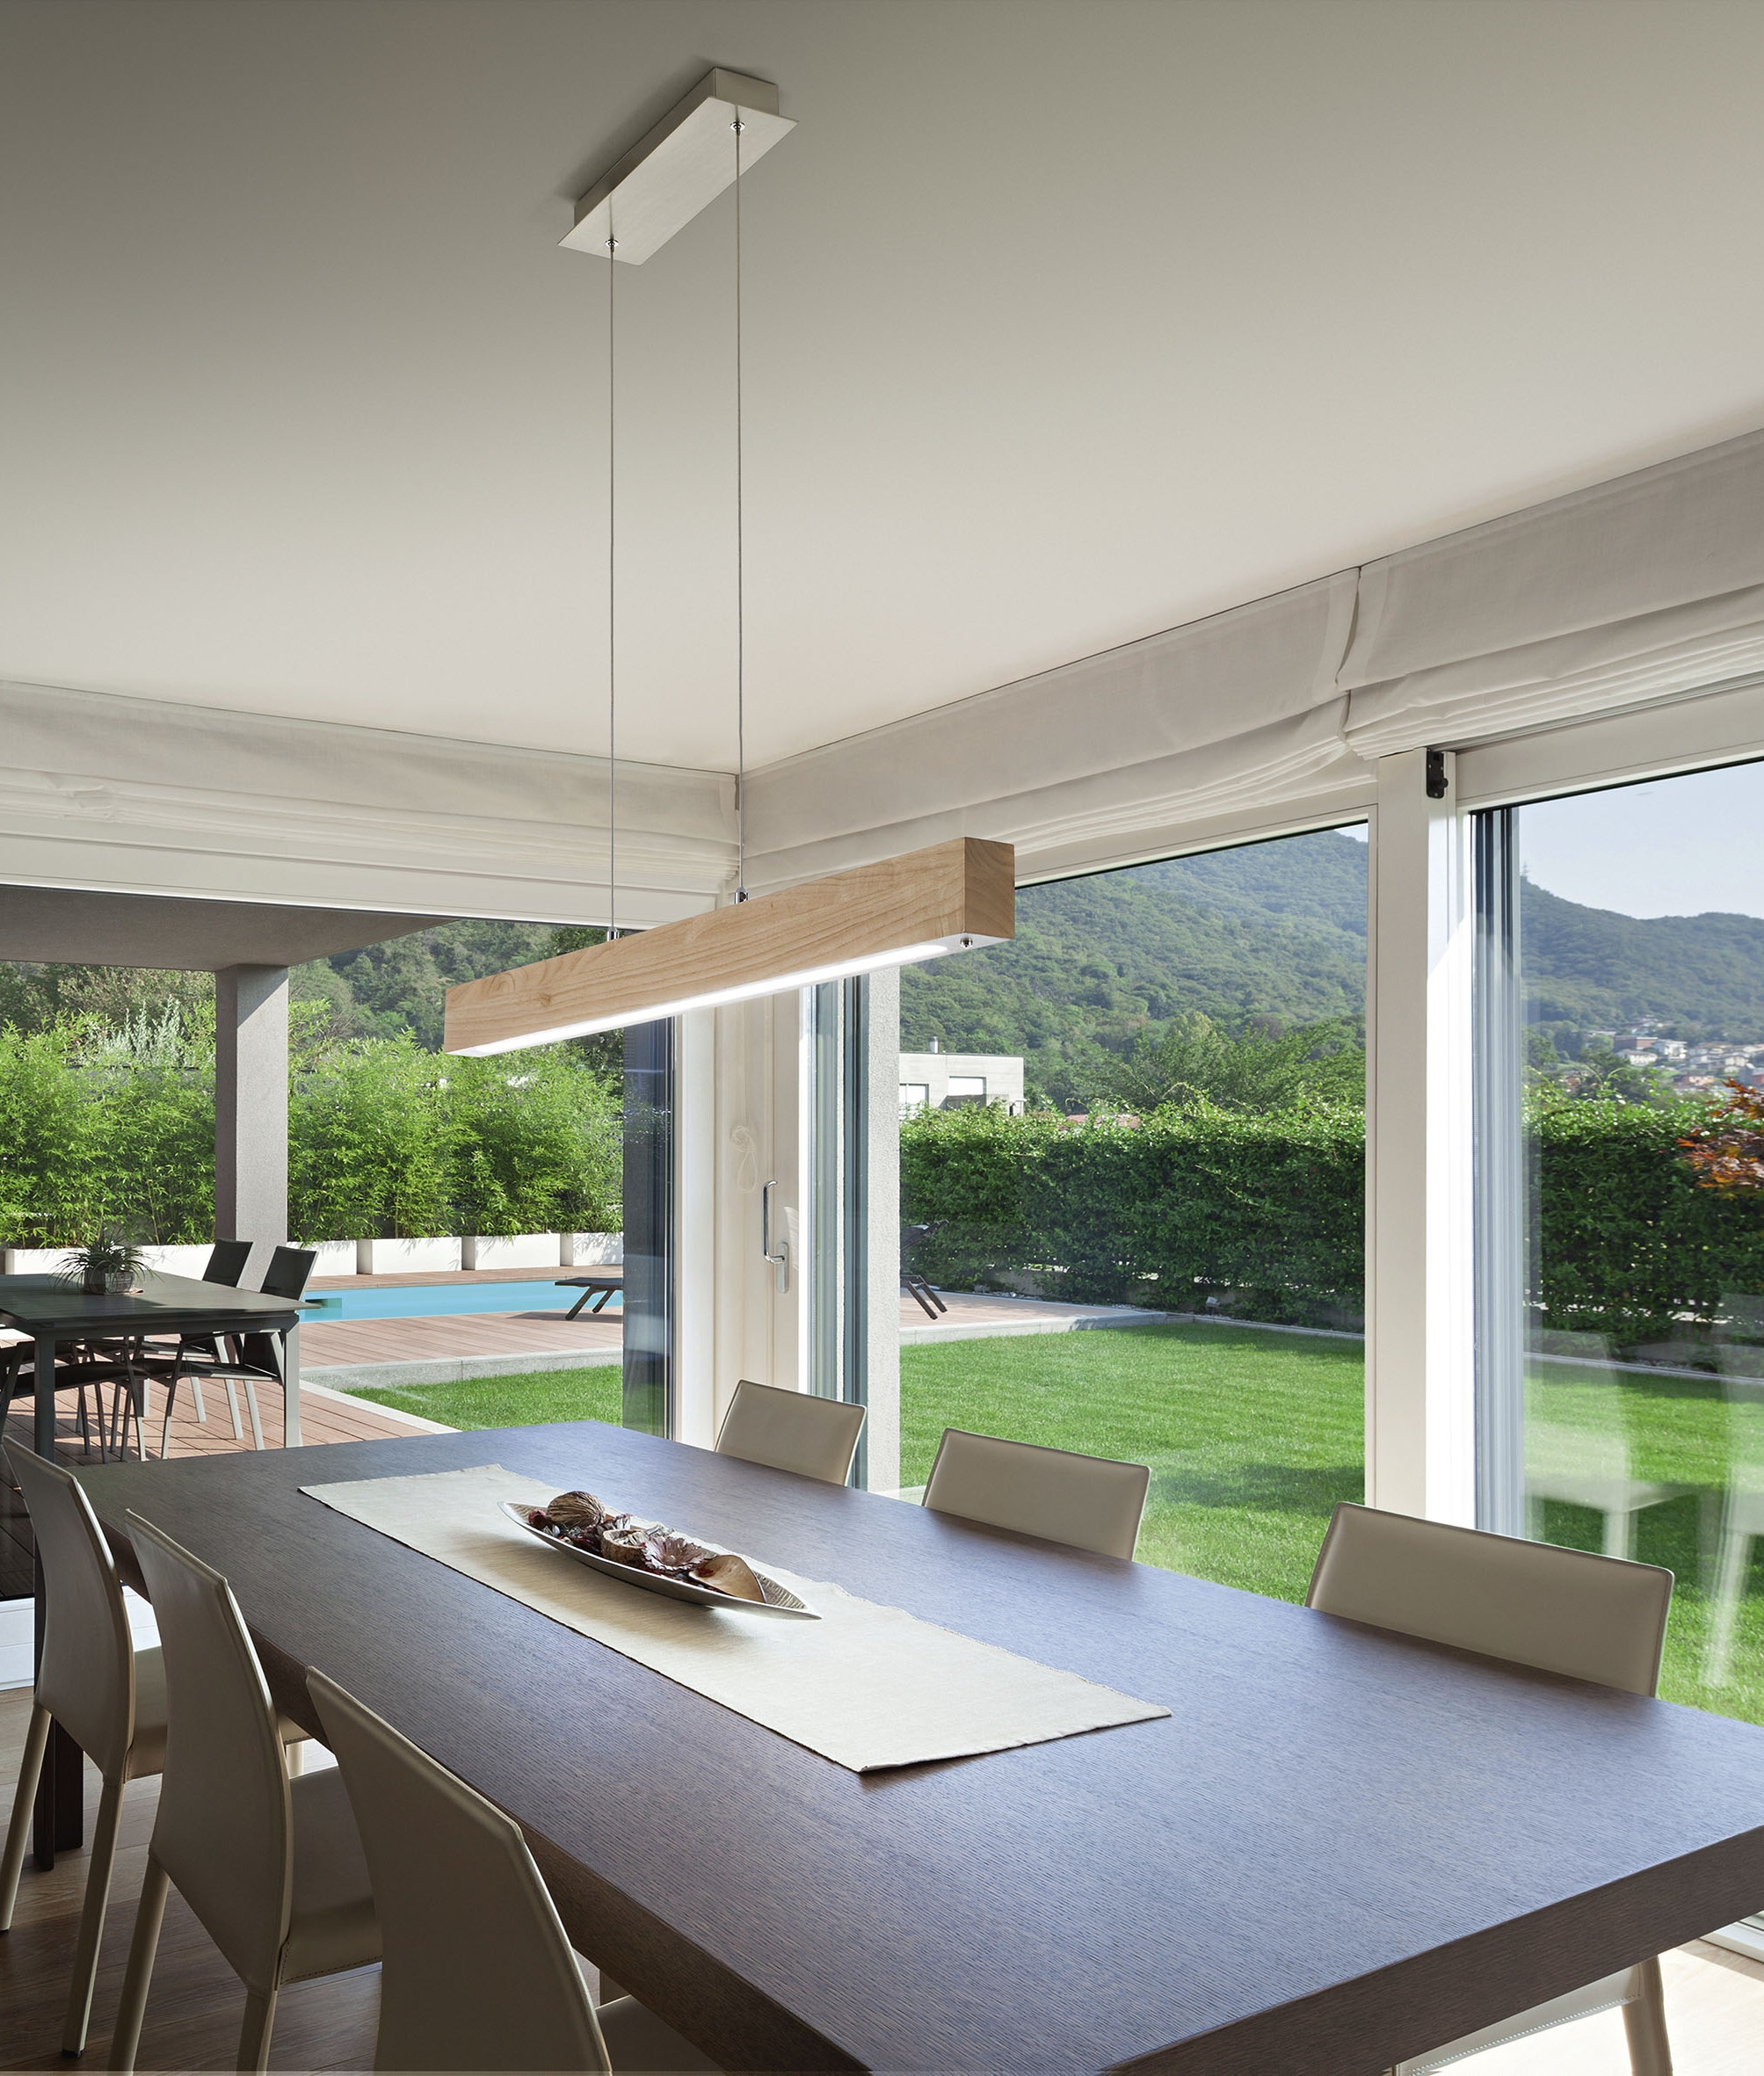 Linear Dining Room Lighting: Linear LED Suspended Wood Pendant With Dimmer